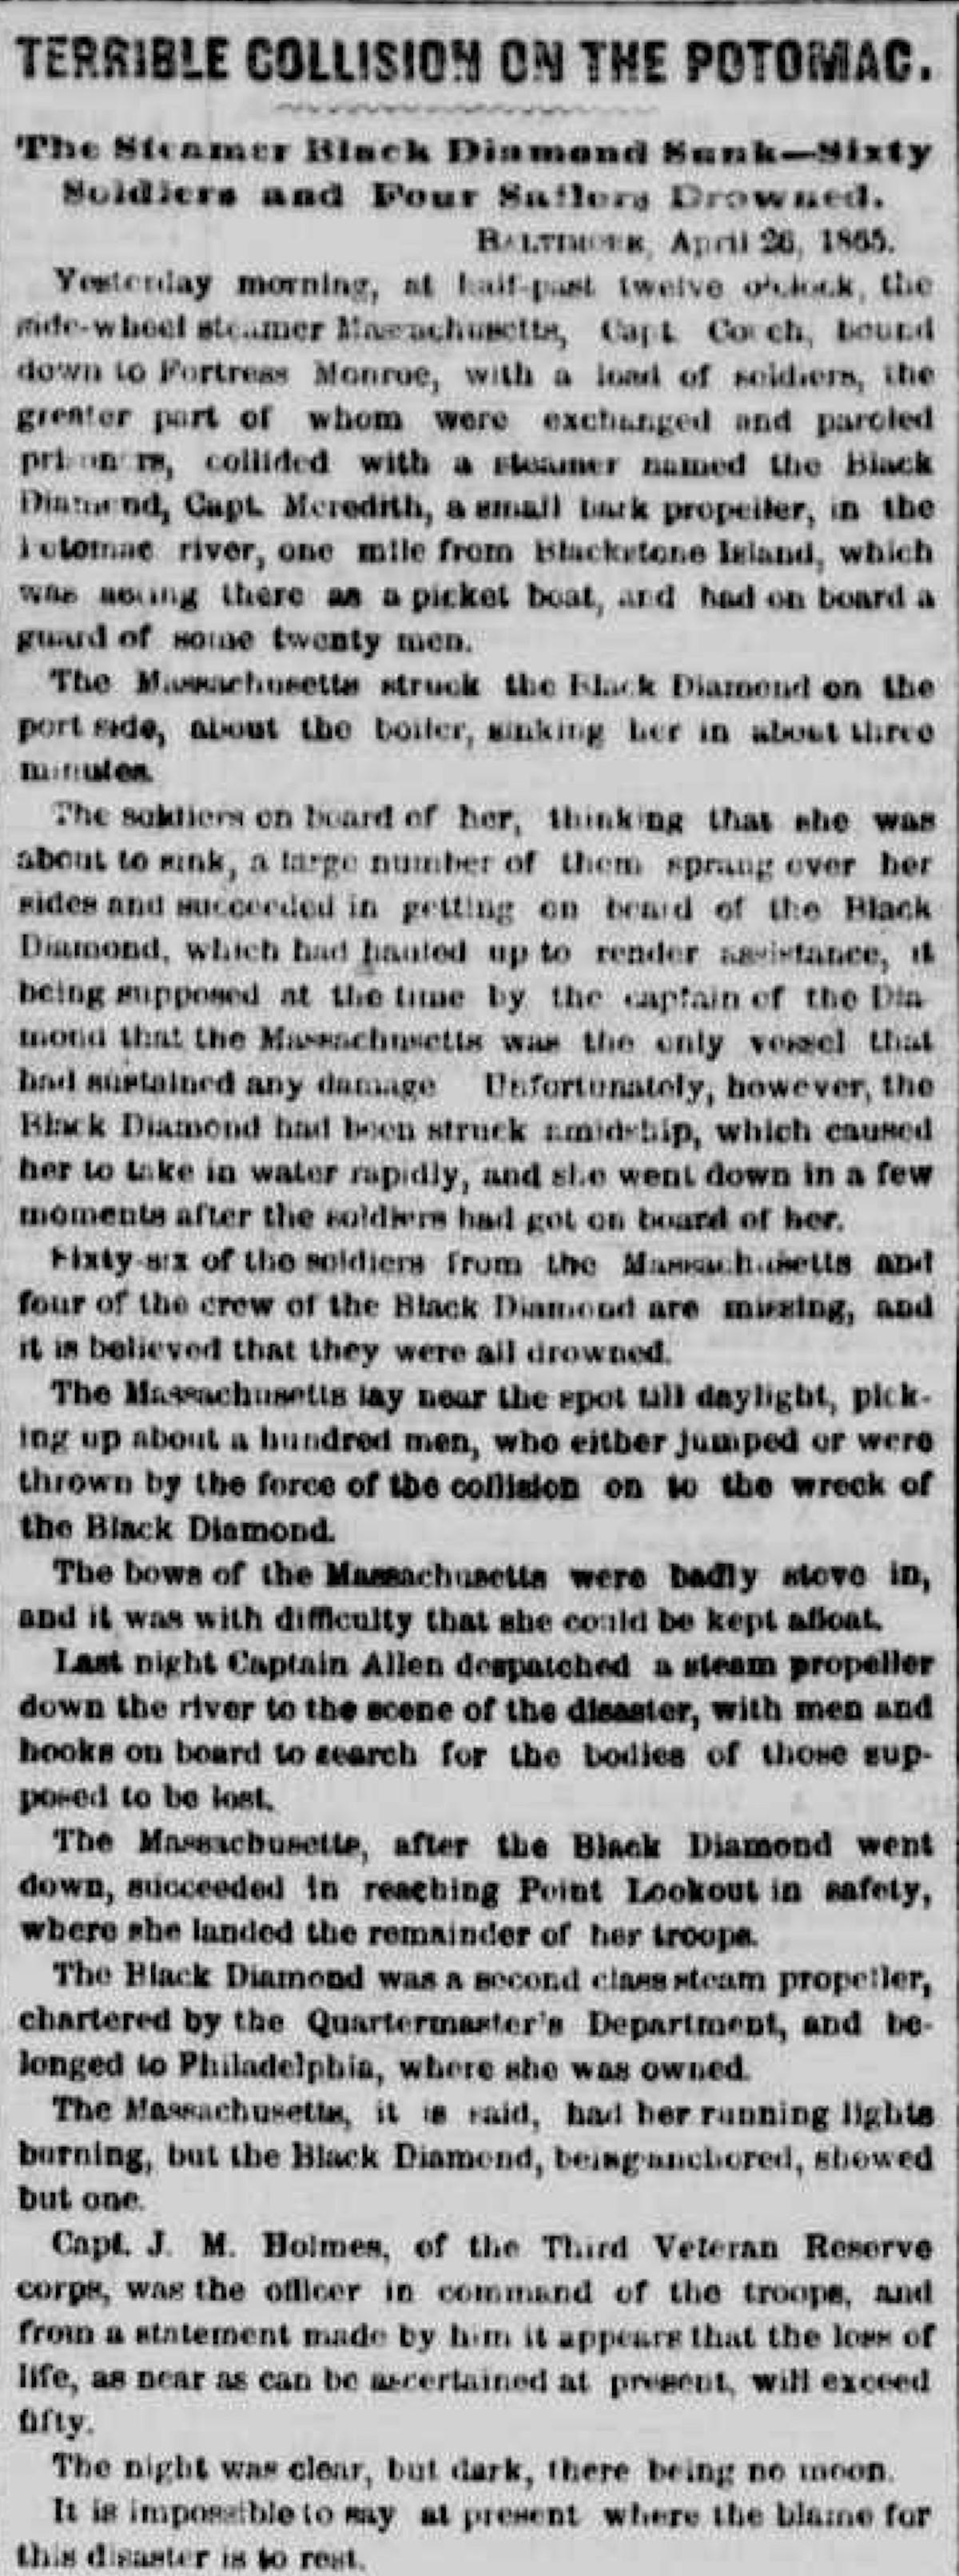 Image of newspaper article, <i>The New York Herald</i>, April 27, 1865